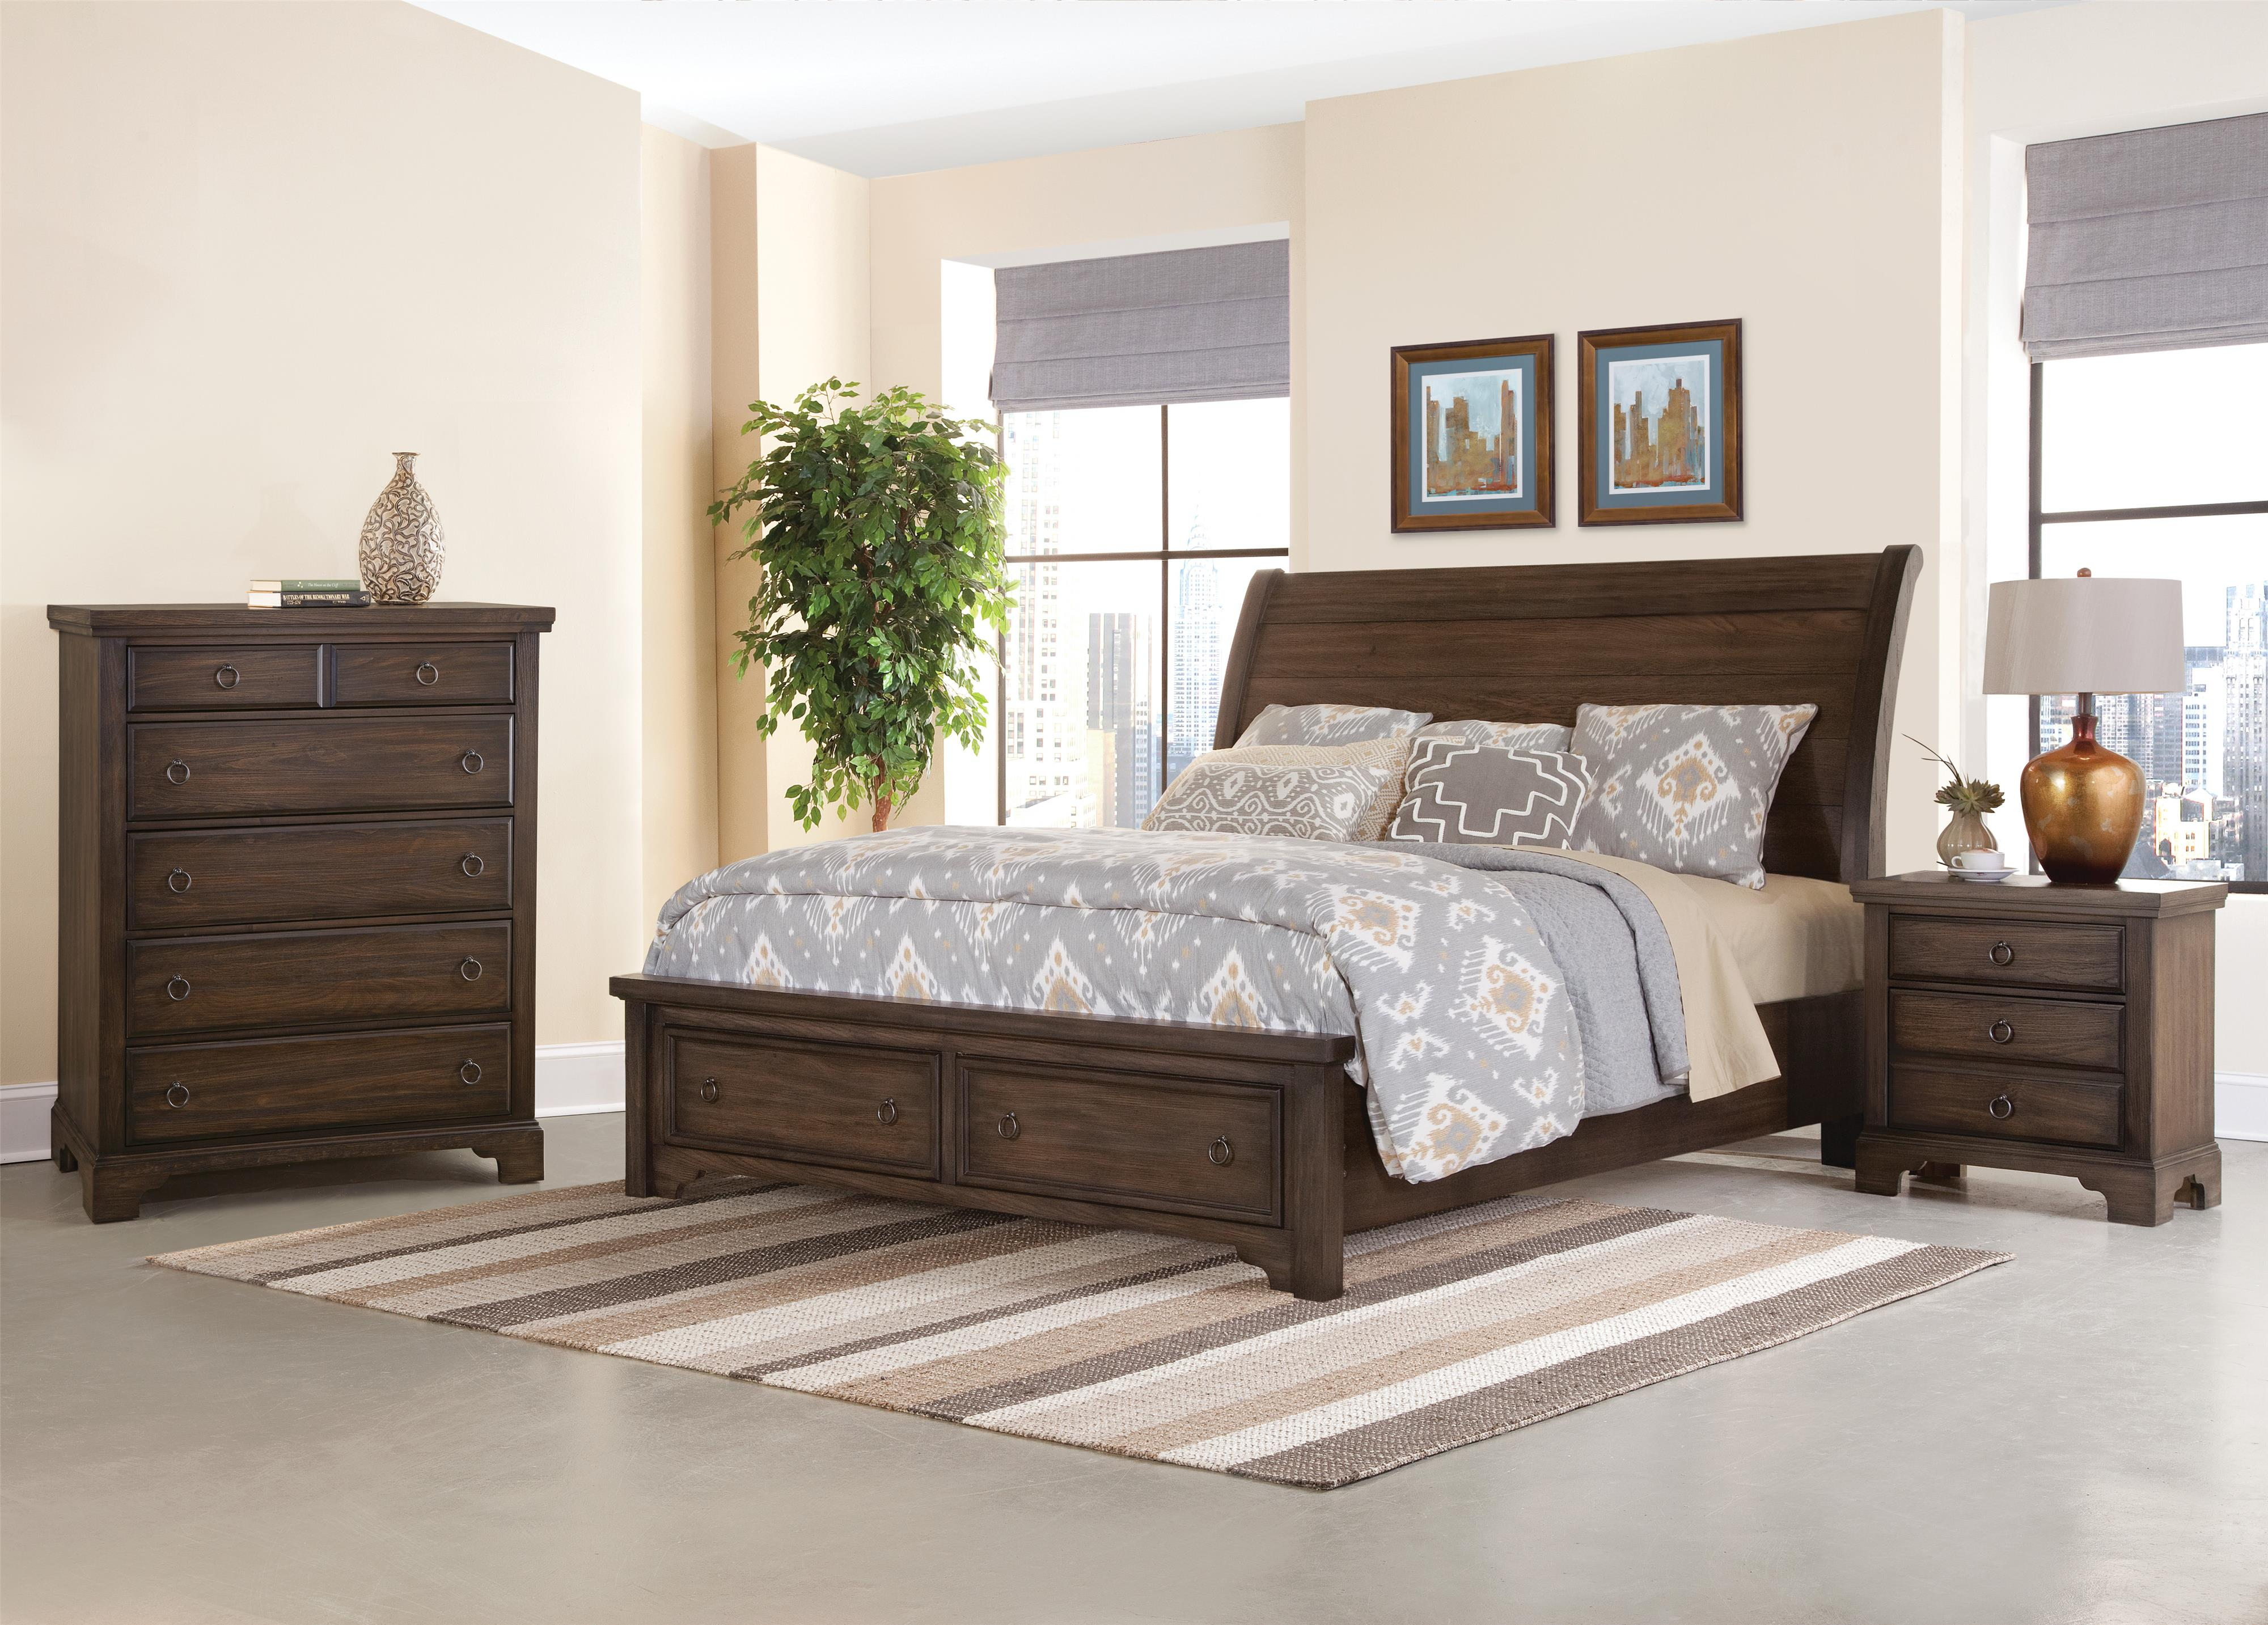 distressed queen sleigh bed with solid wood planks whiskey barrel